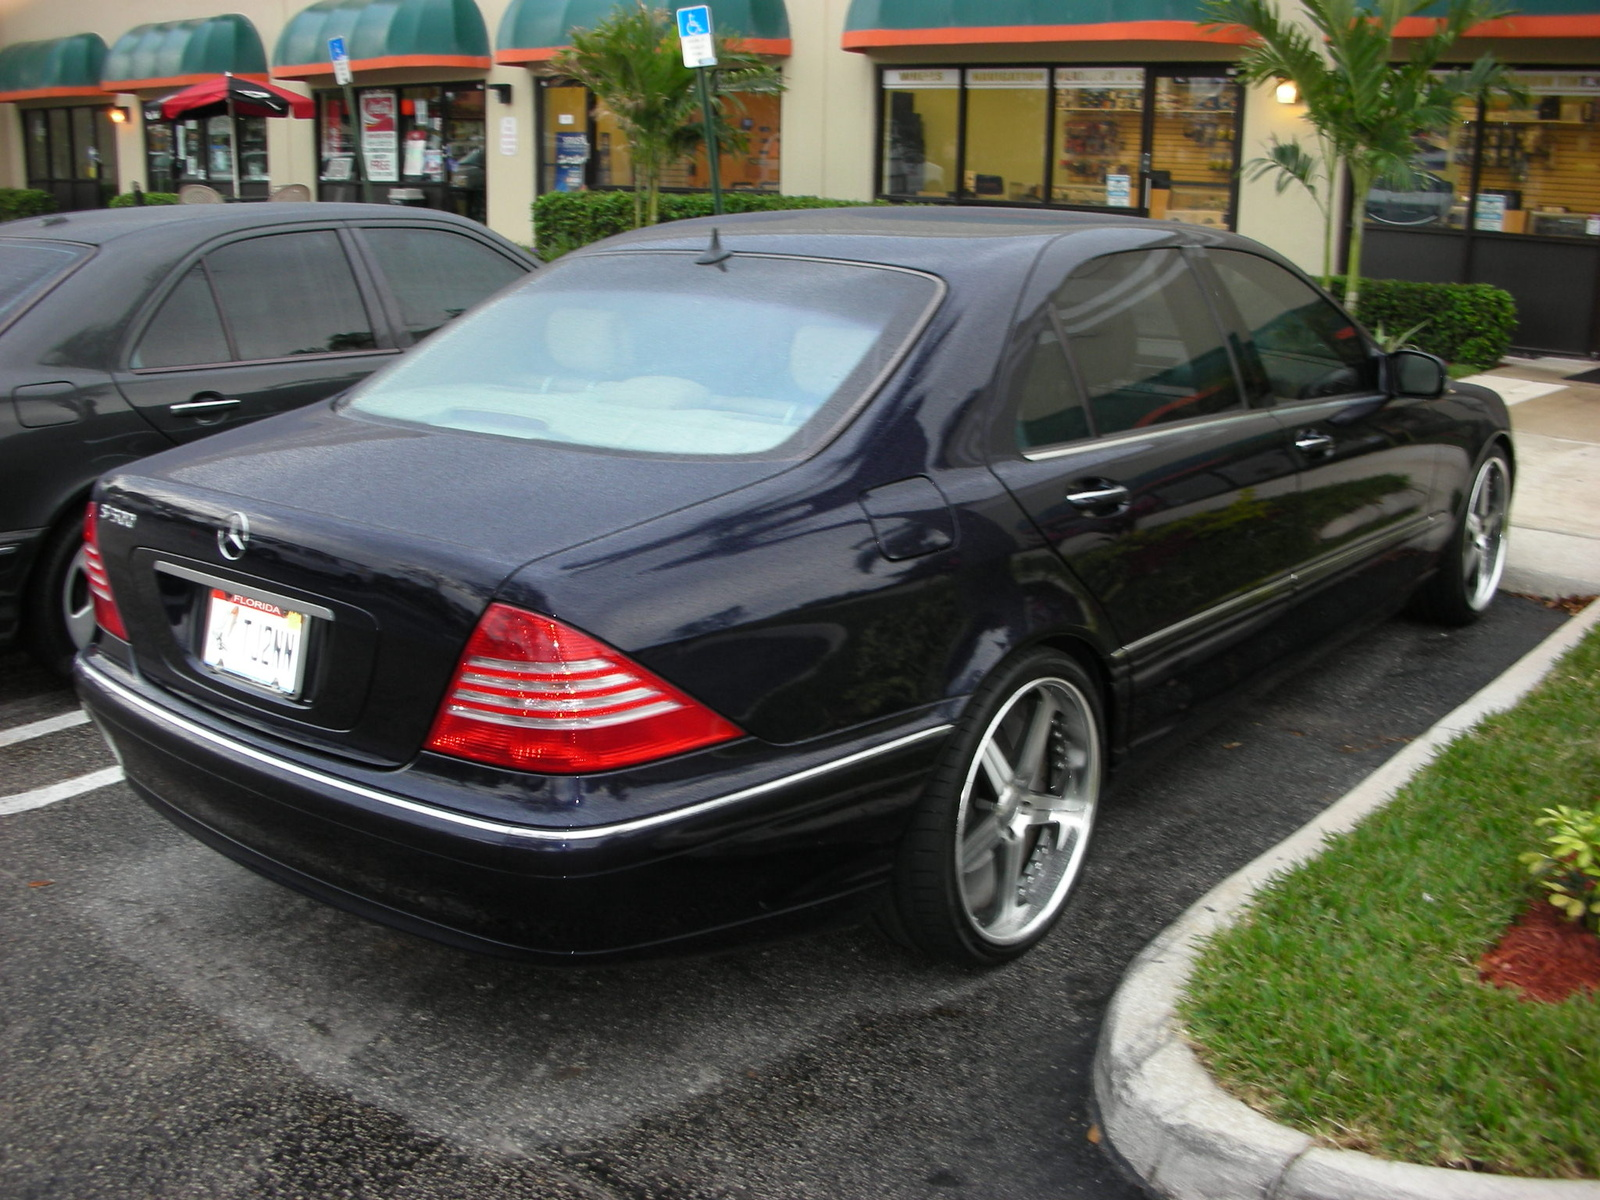 Mercedes benz s500 2003 review amazing pictures and for 2003 s500 mercedes benz